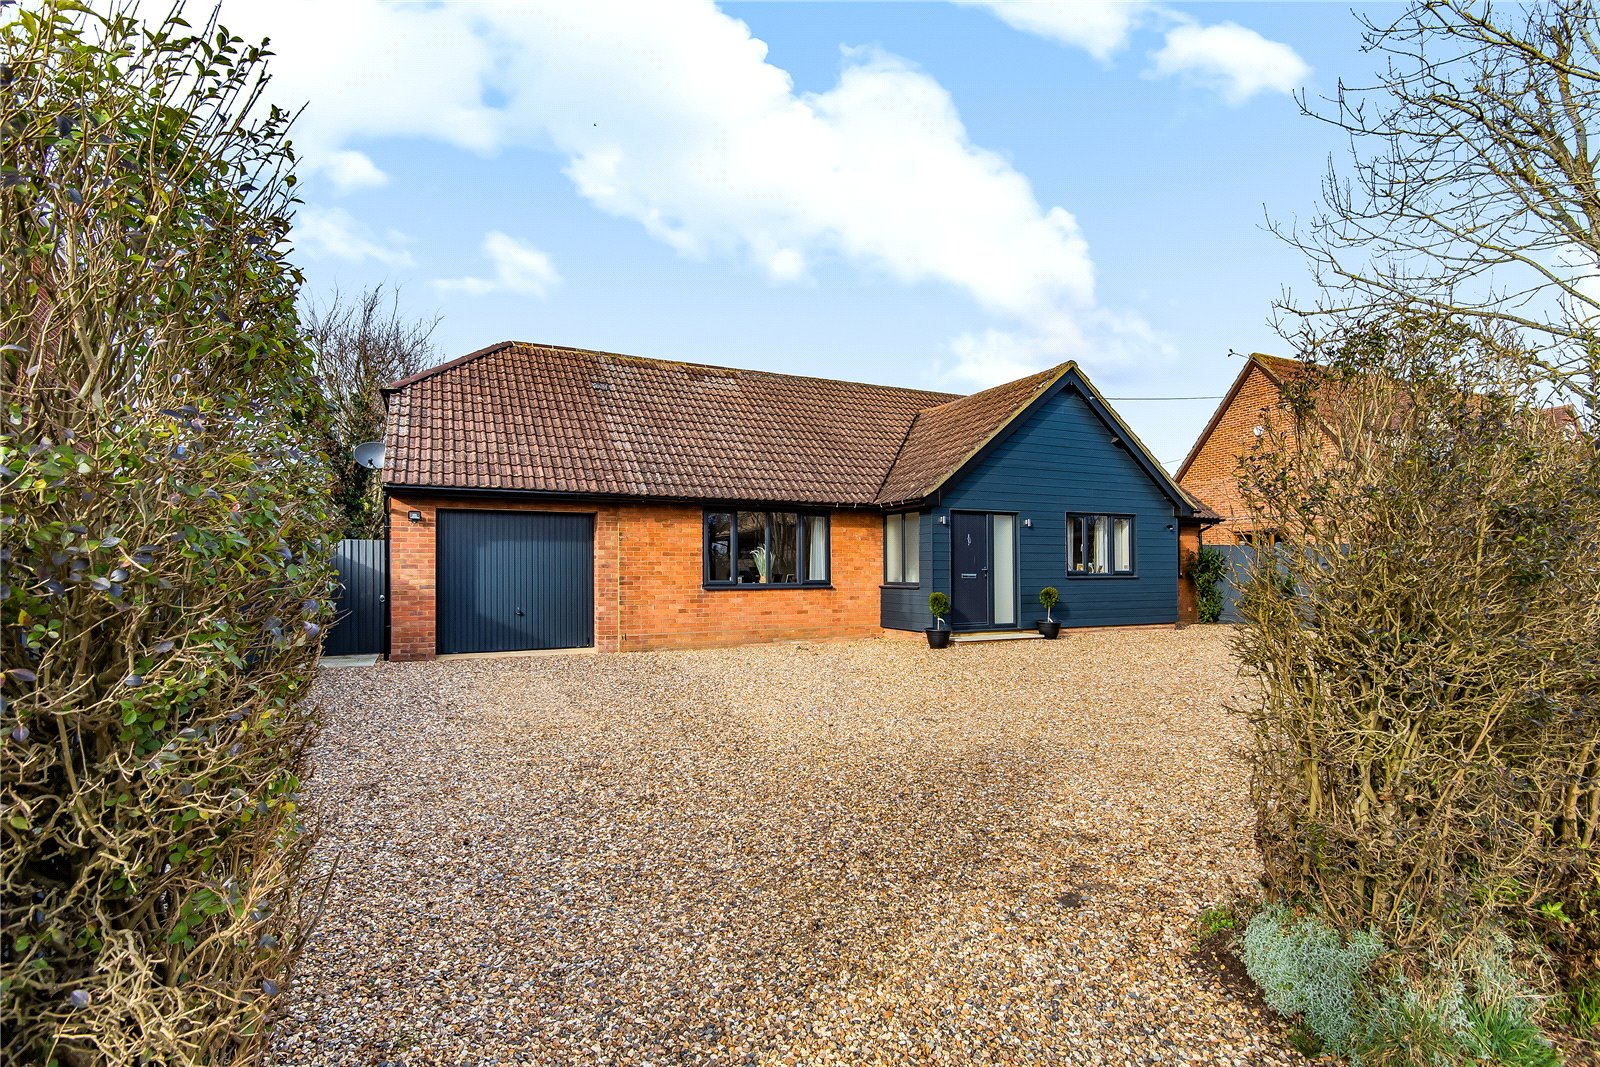 3 bed bungalow for sale in Great Gransden, SG19 3AQ, SG19